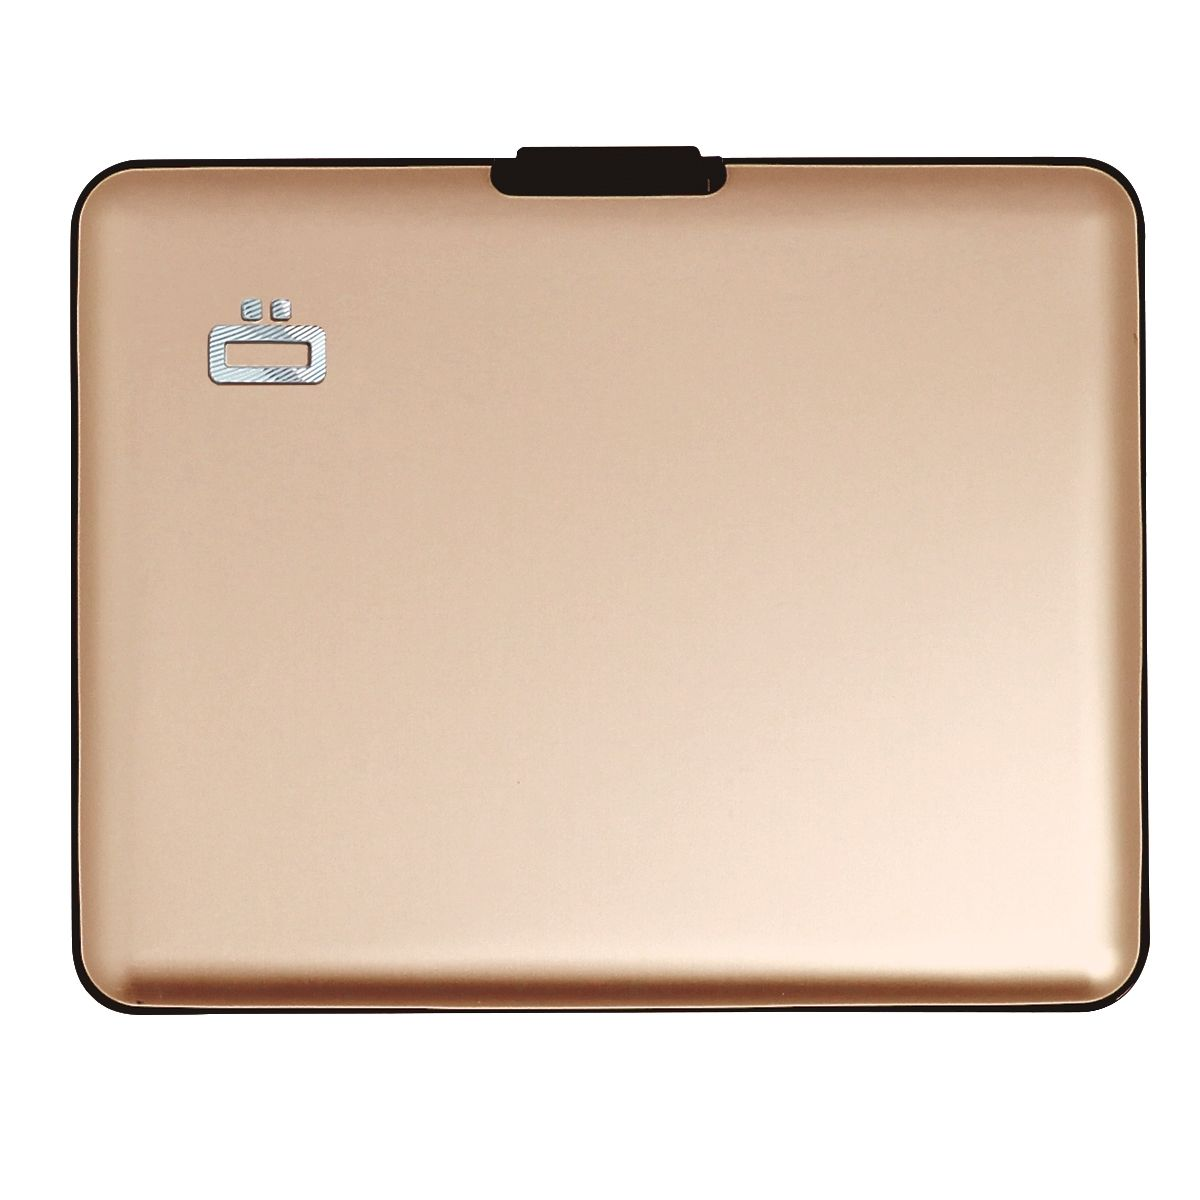 OGON Aluminum Wallet Big - Rose Gold